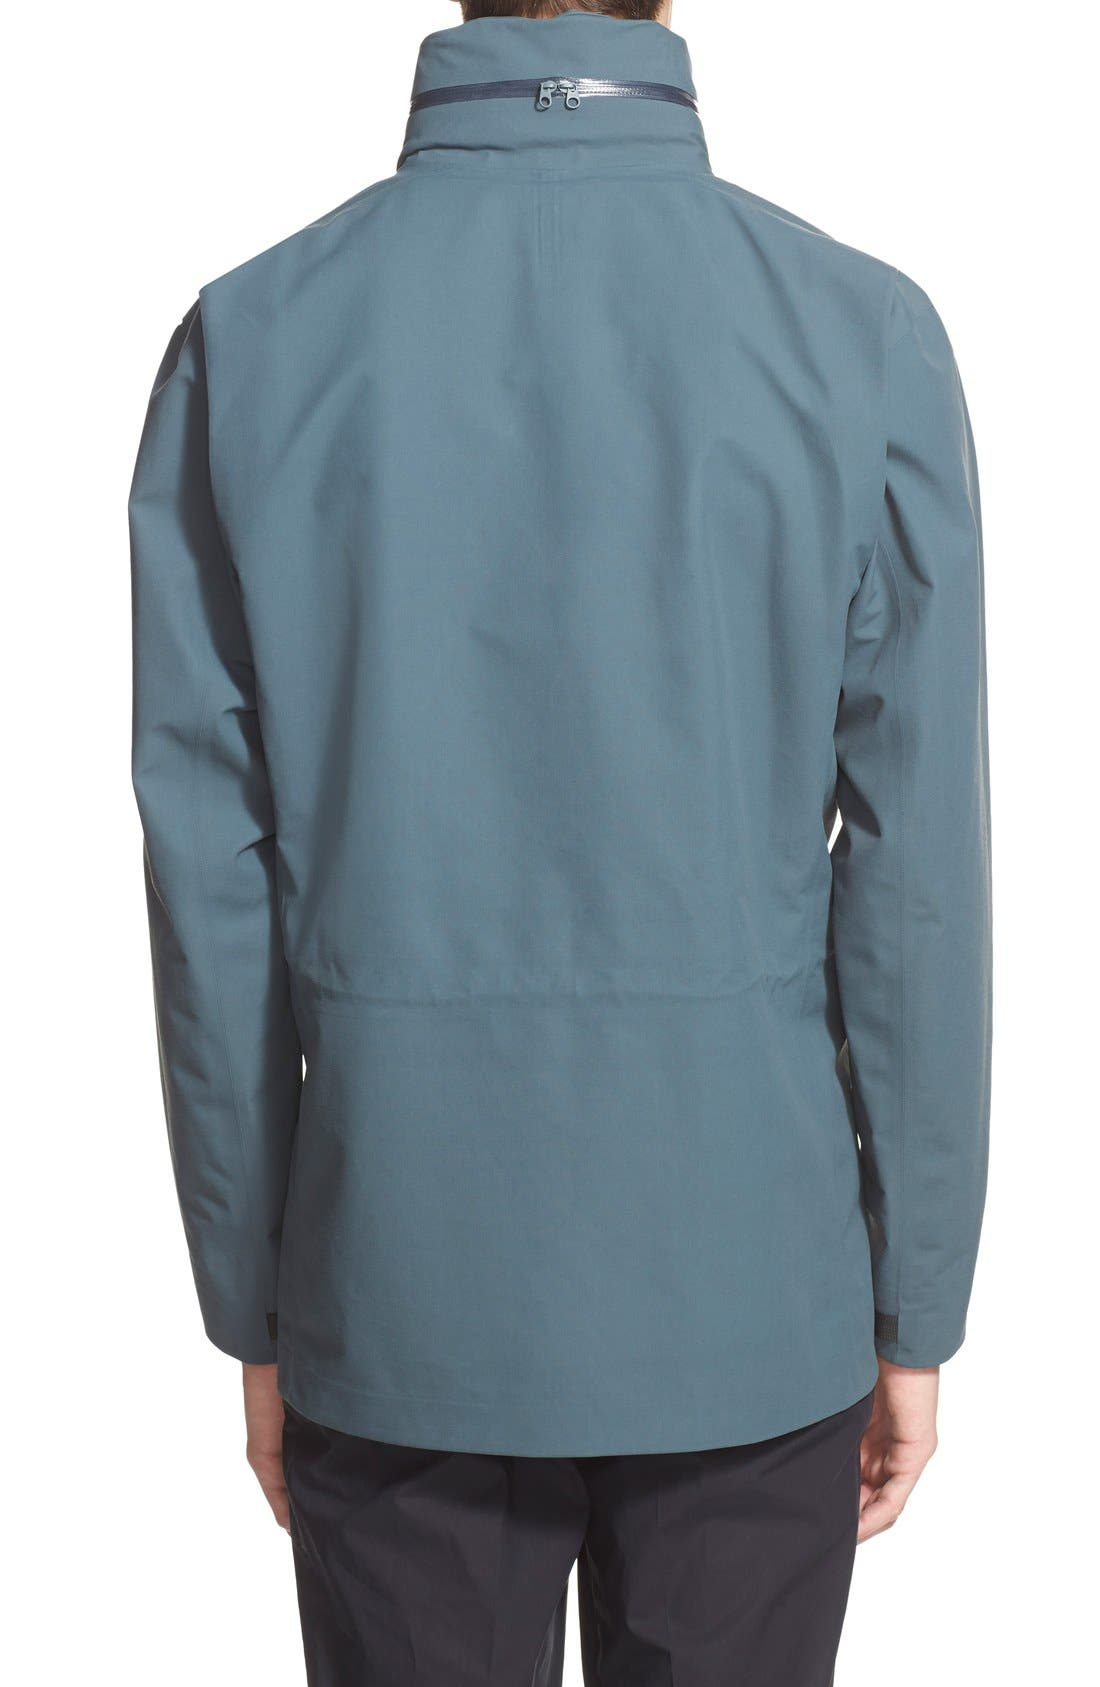 ARC'TERYX VEILANCE,                             Waterproof Field Jacket,                             Alternate thumbnail 2, color,                             400